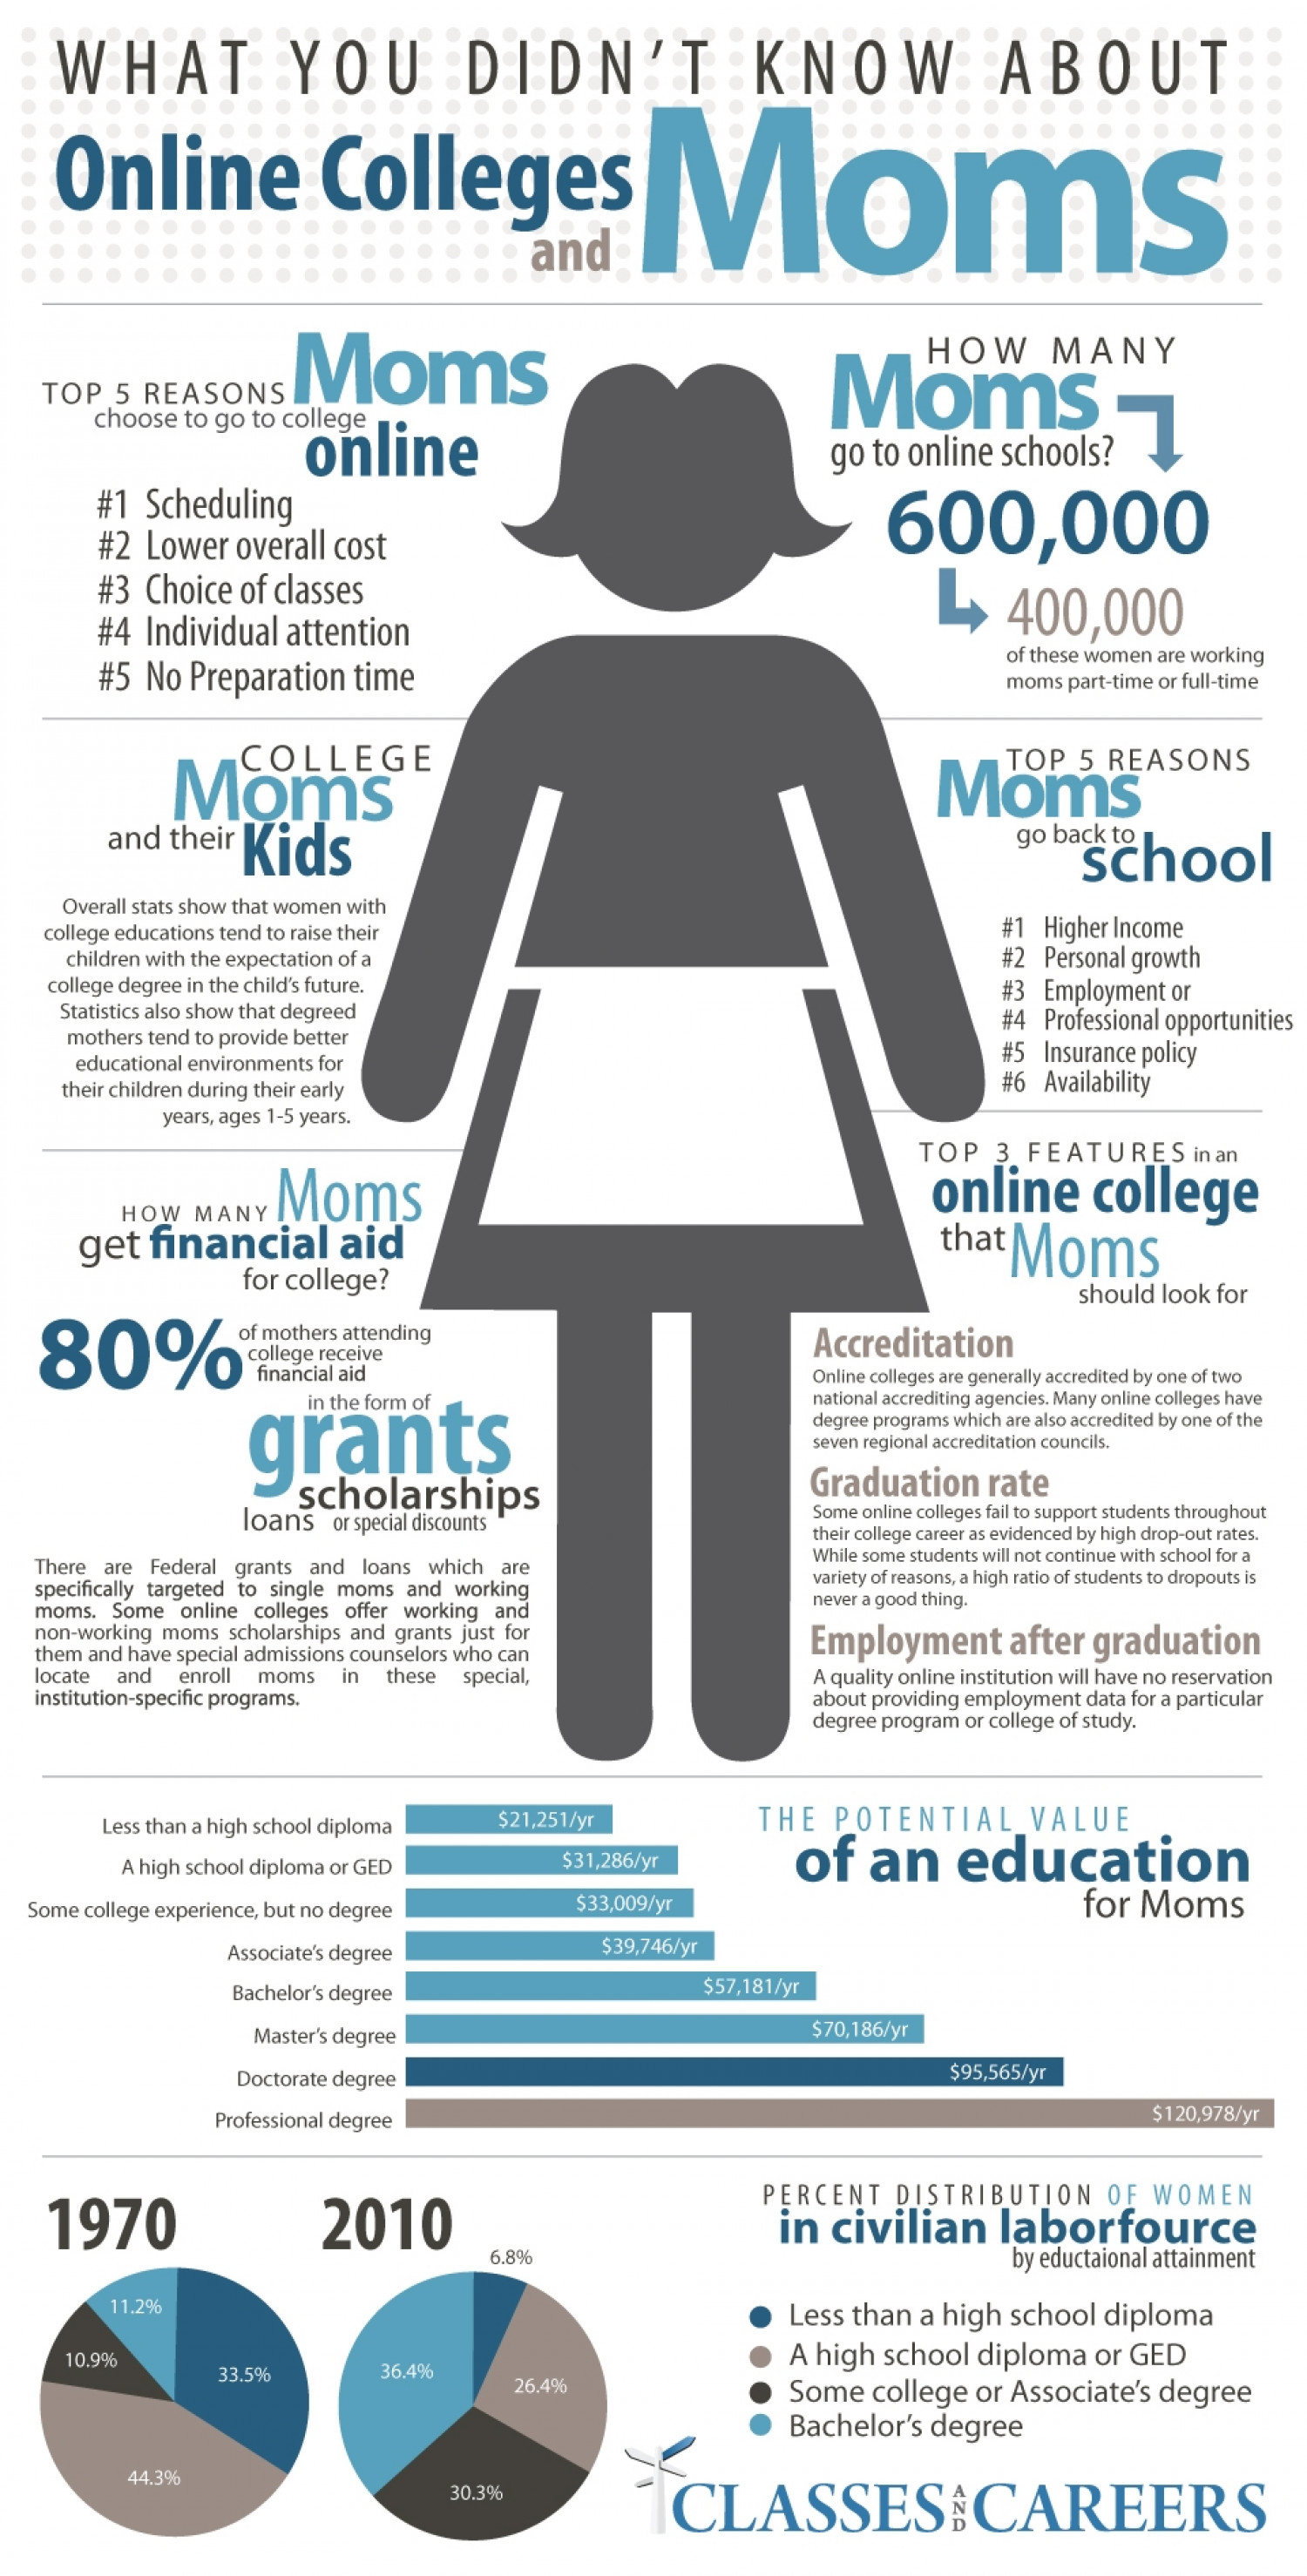 What you Didn't Know About Online Colleges and Moms Infographic